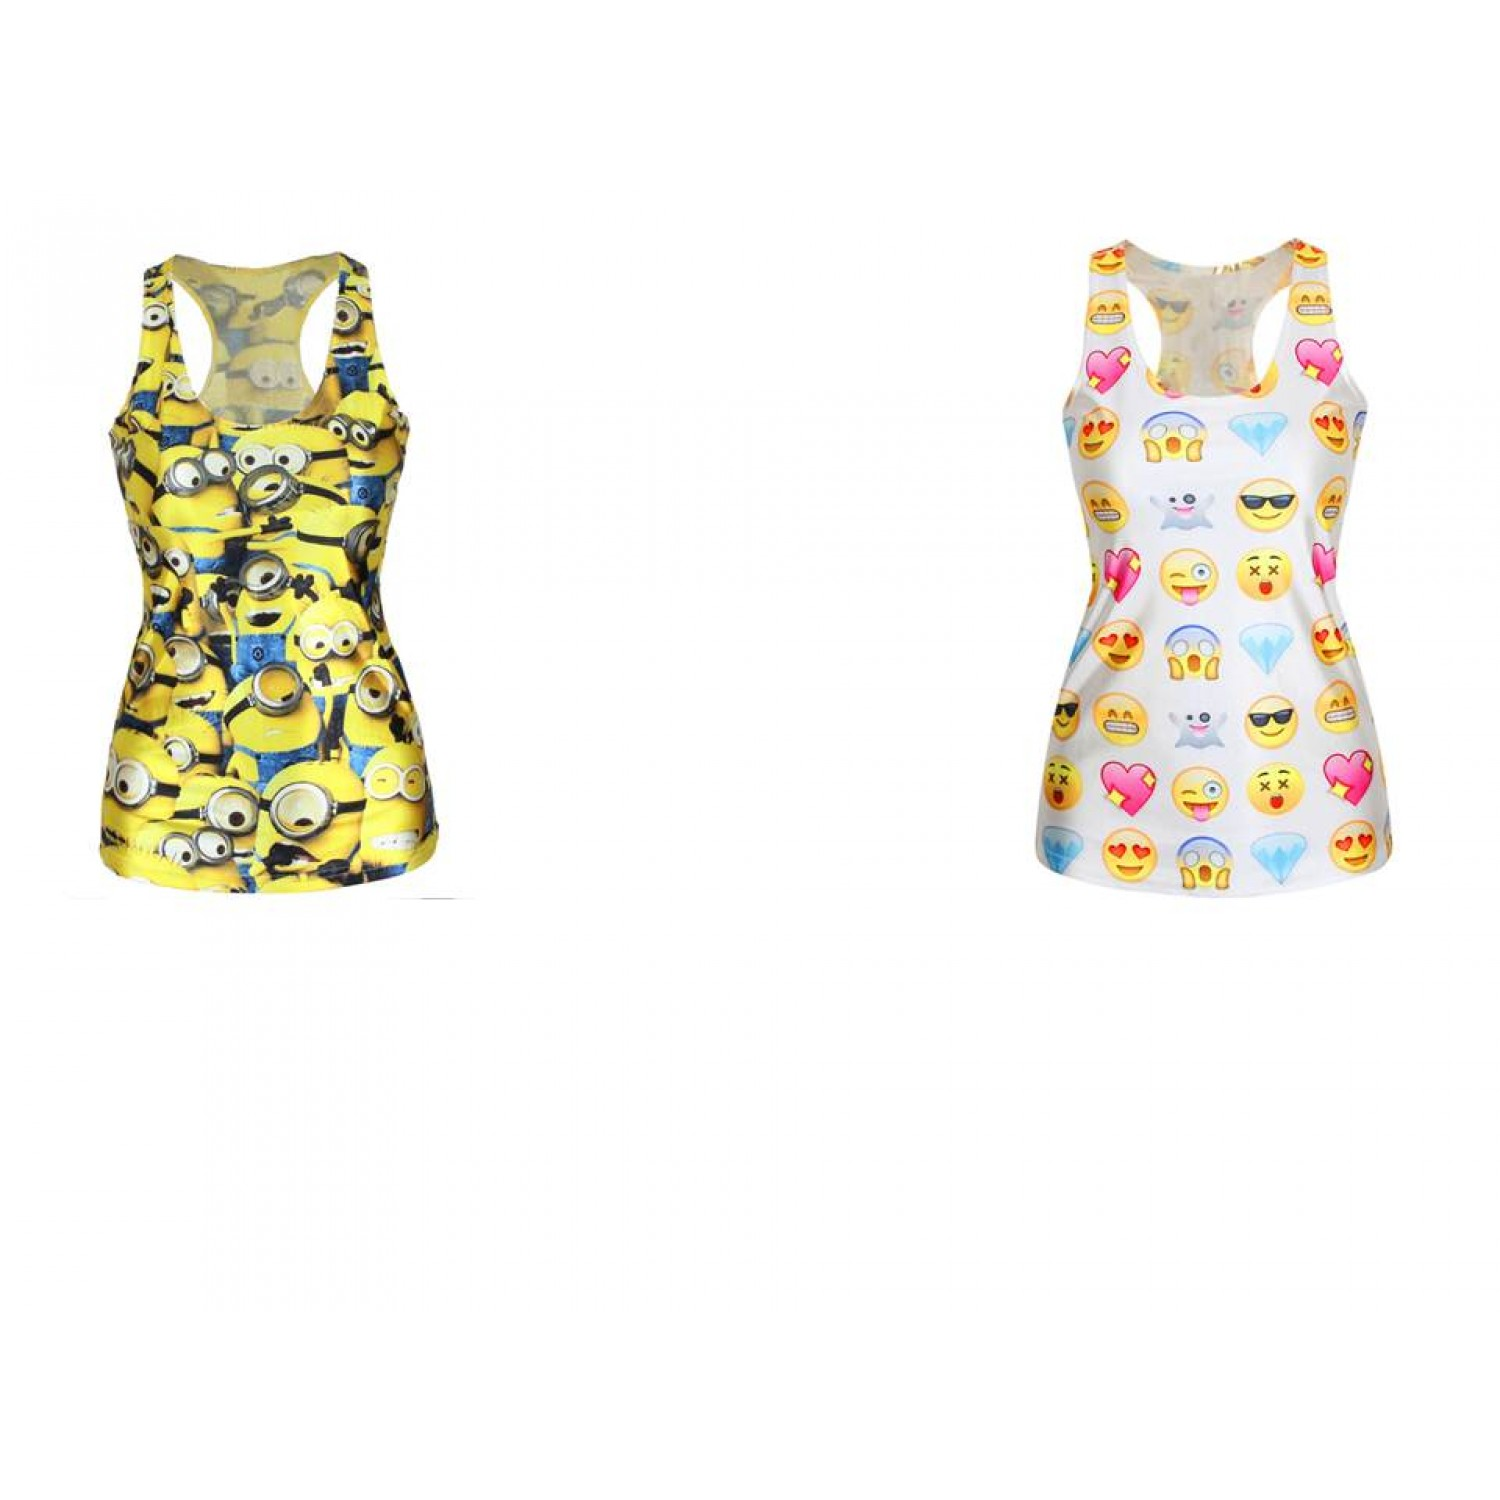 A combo pack of Gojilove Despicable Me minions yellow + Emoji Print Tank  top